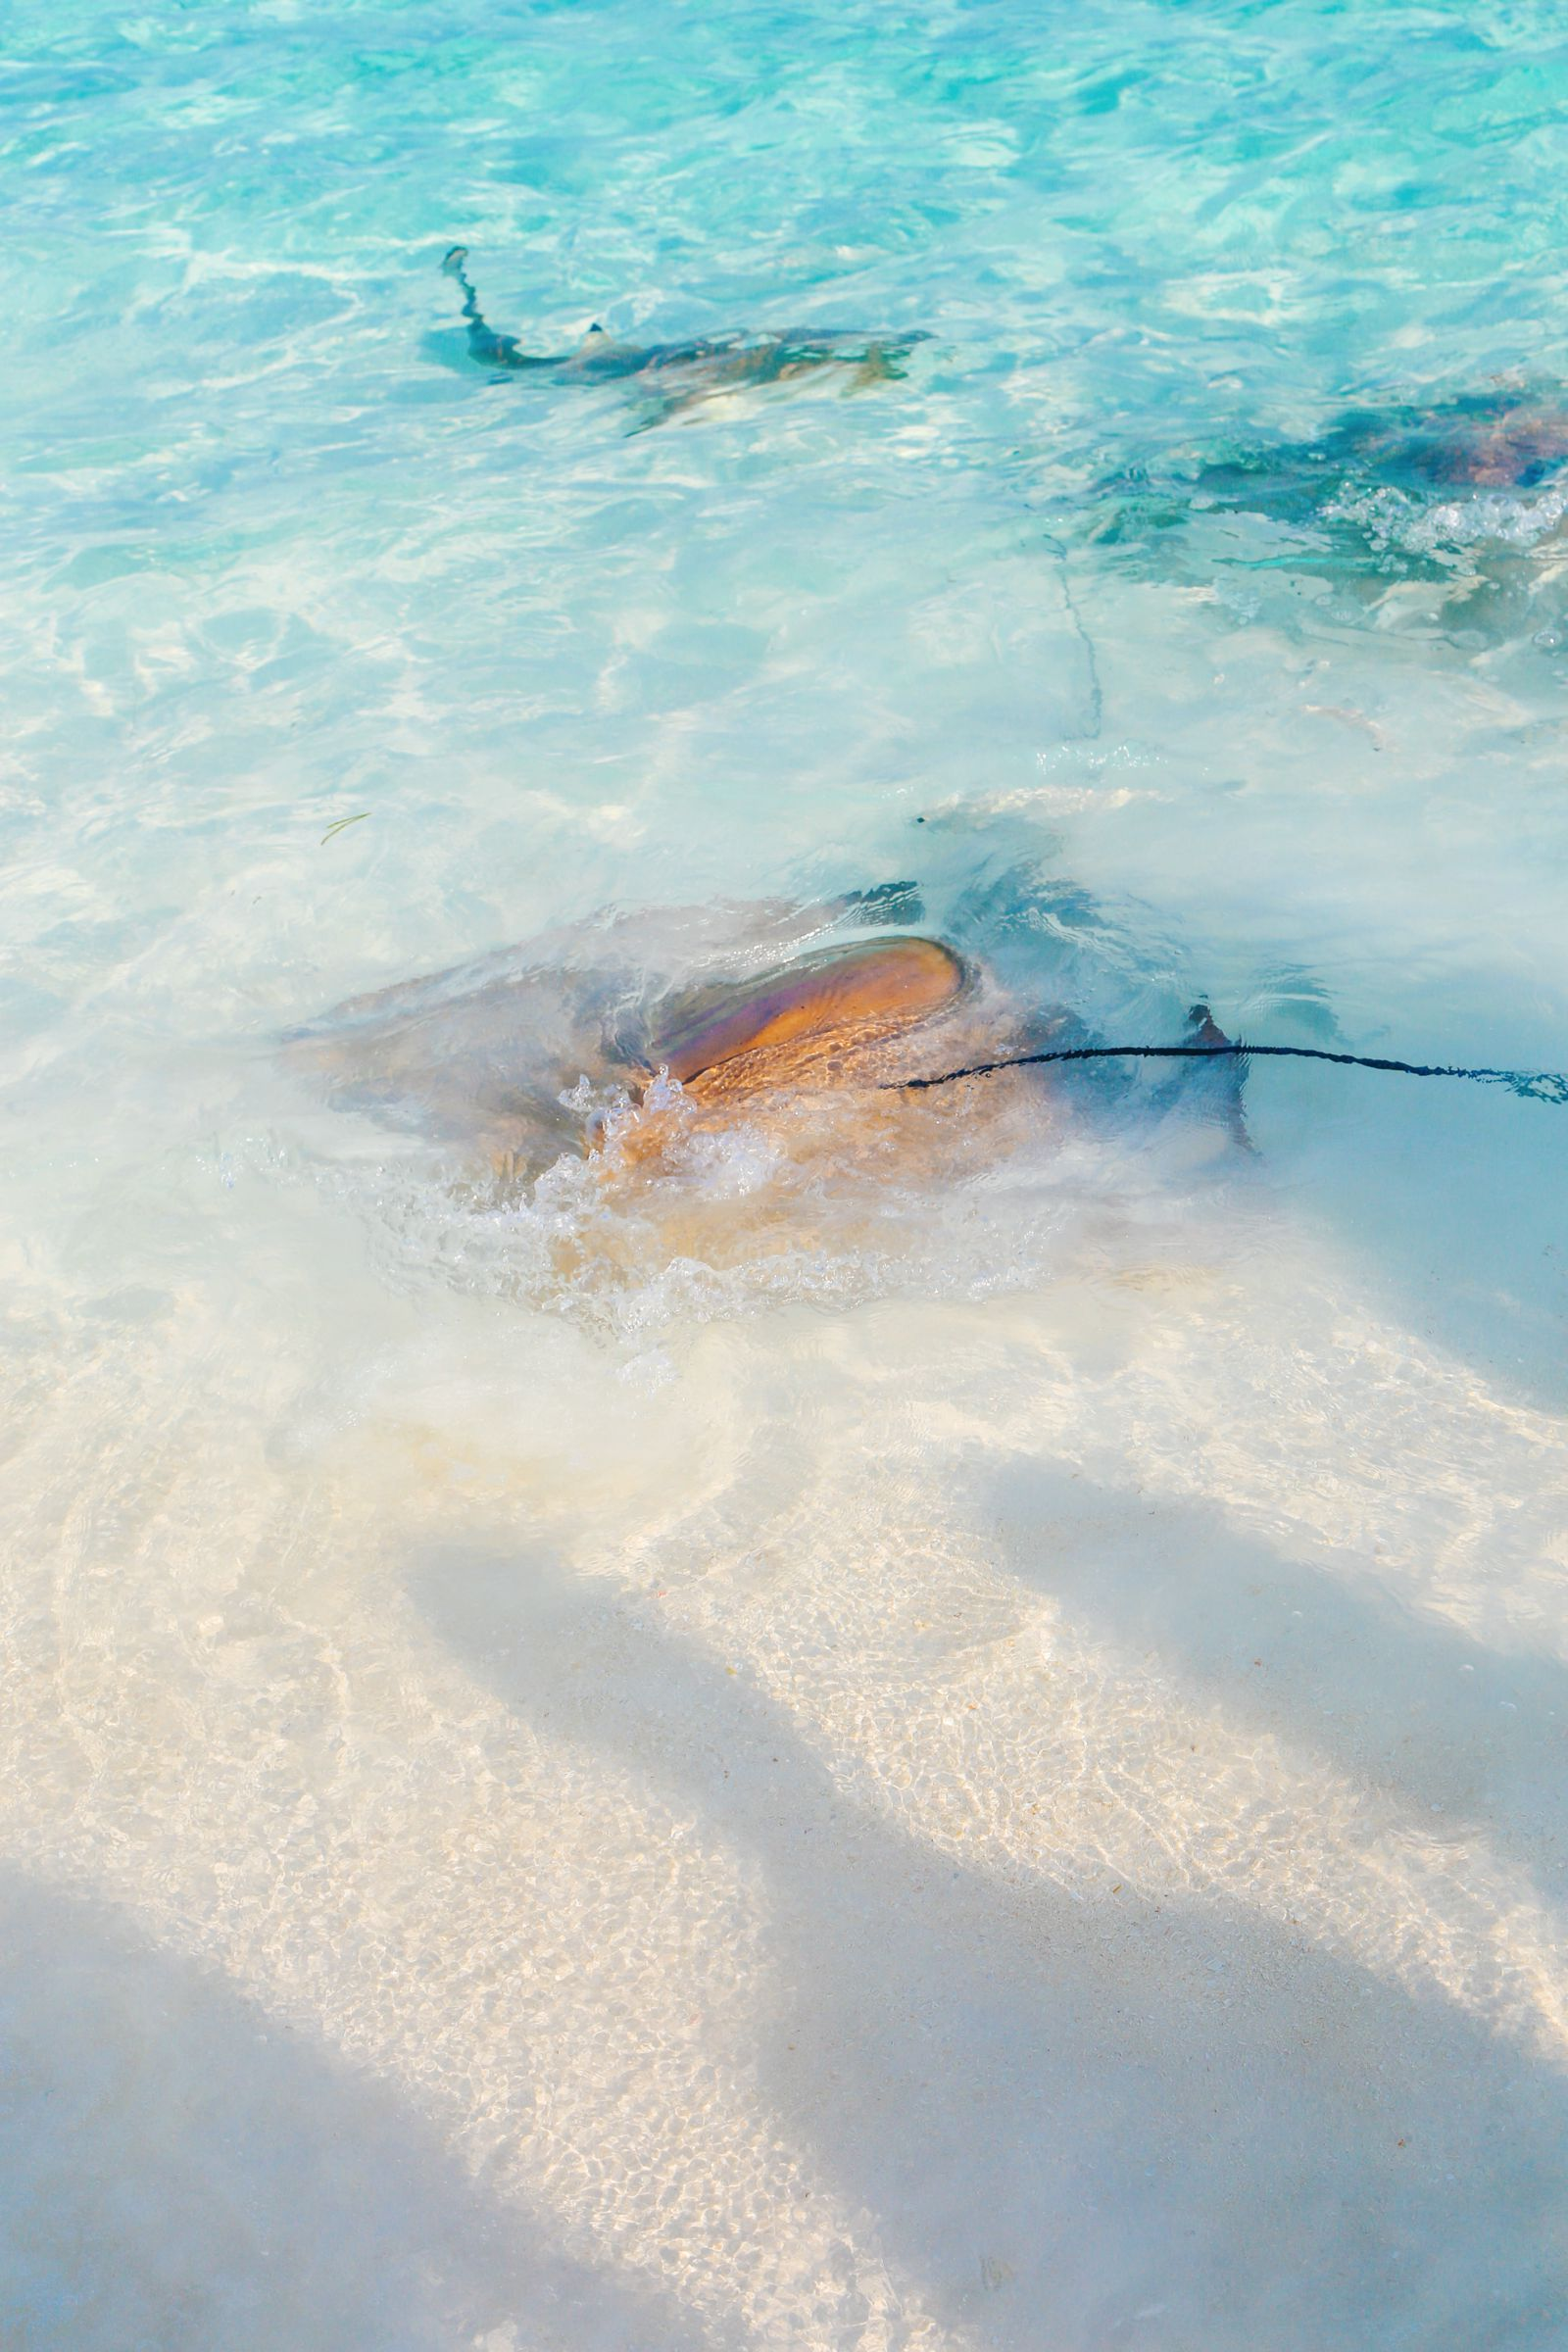 Swimming With Sharks, Turtles, Clownfish And Stingrays In The Maldives (51)